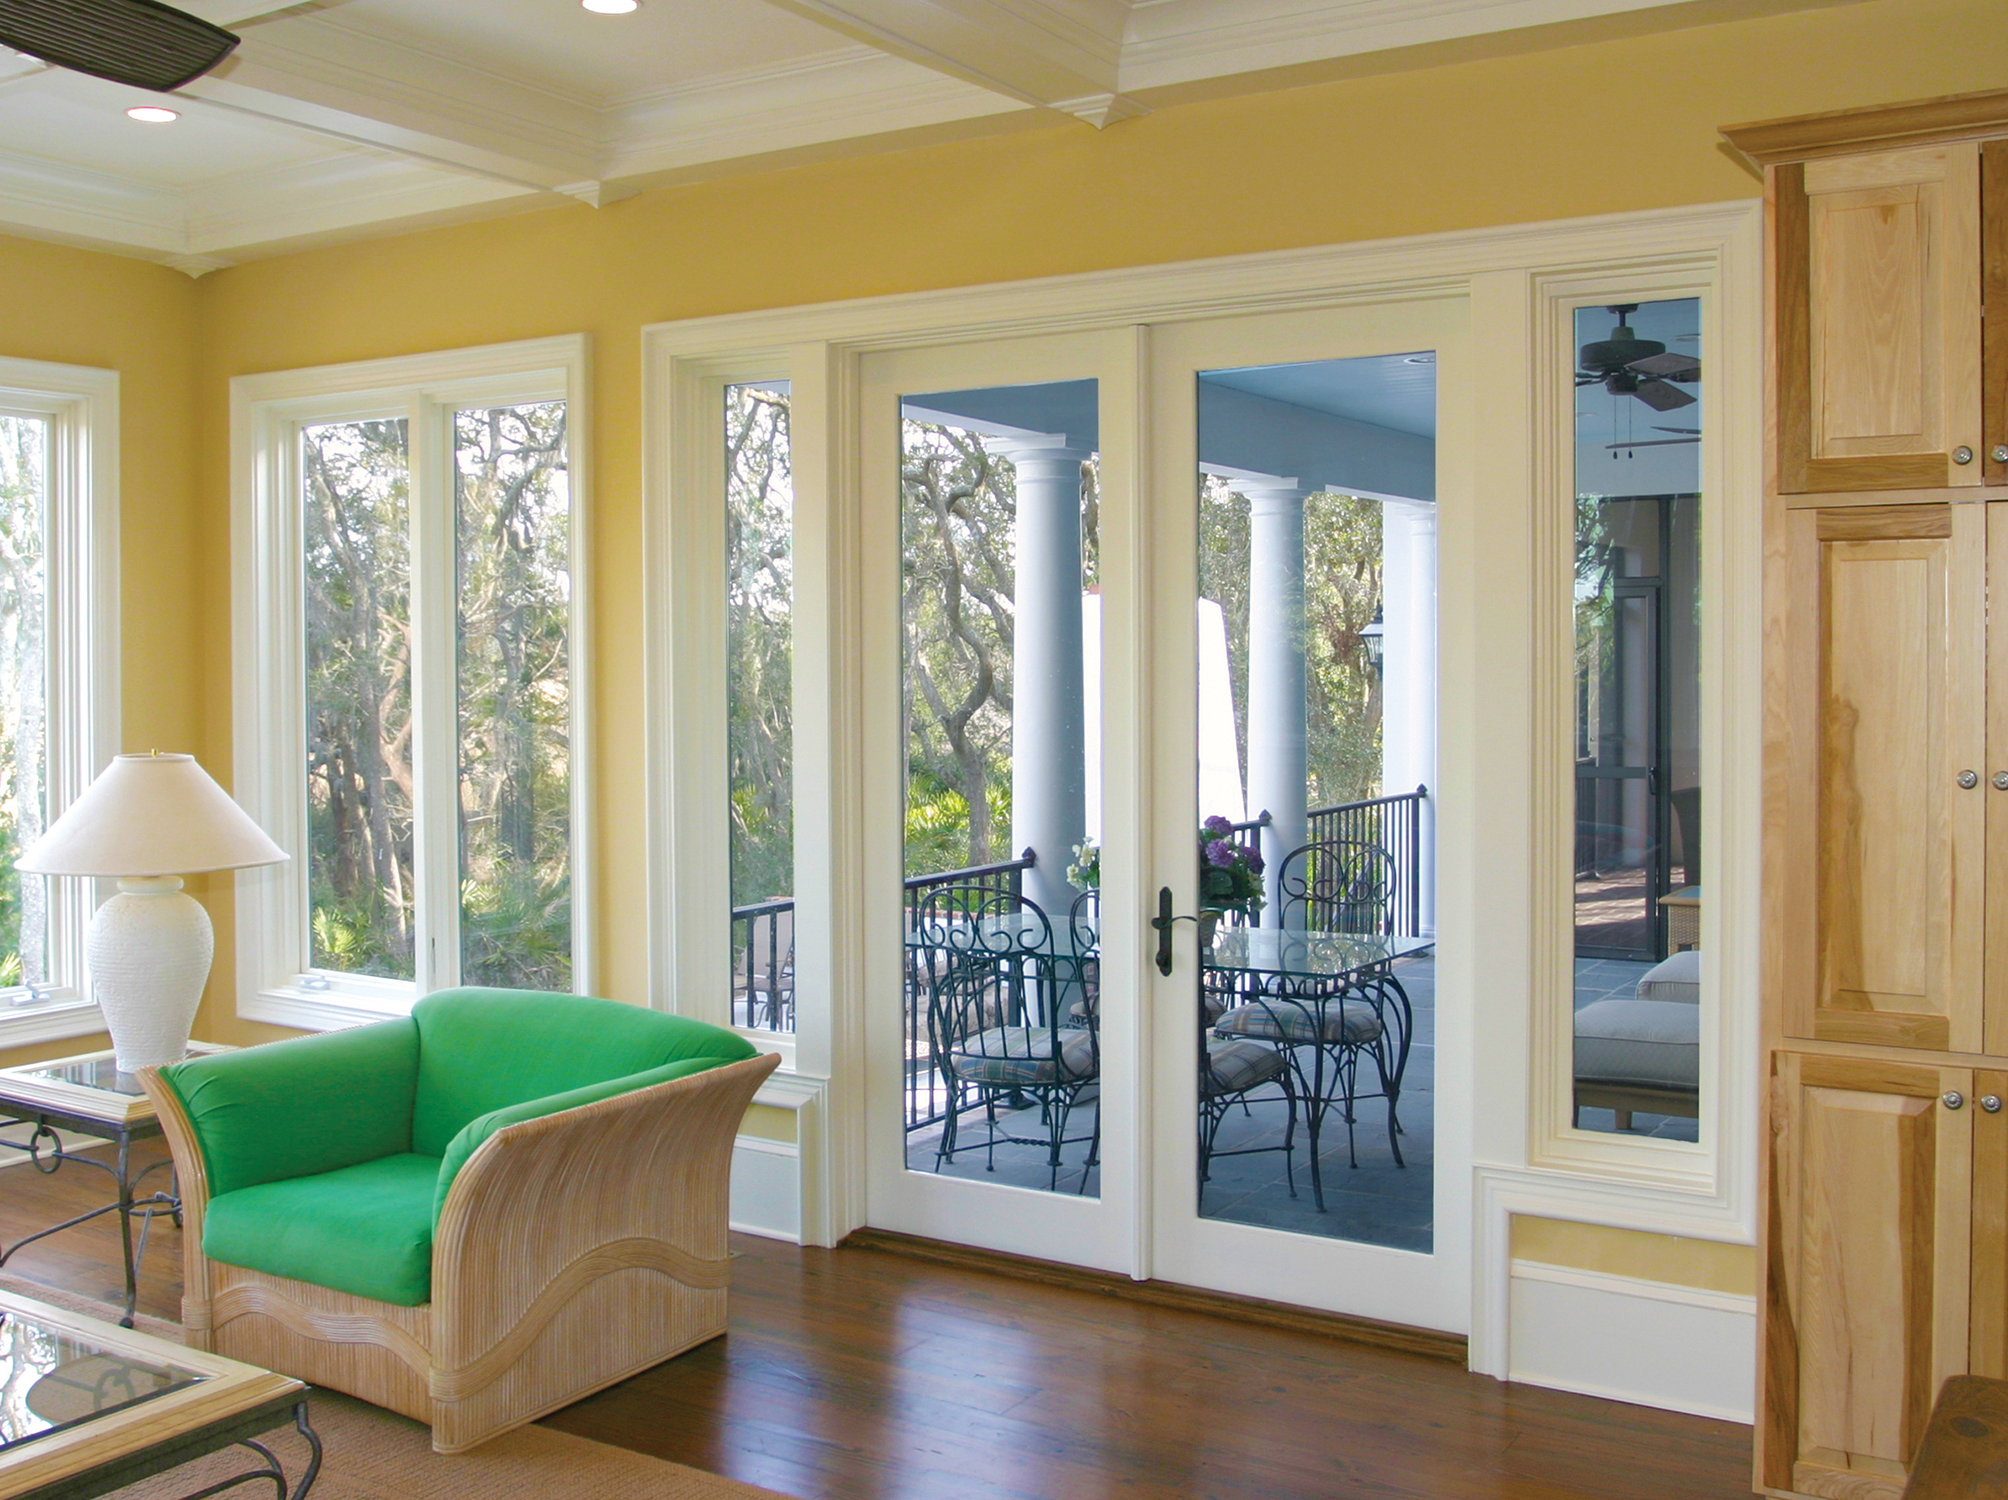 Lincoln Wood Patio Doors Denver 30 years of sales & installation